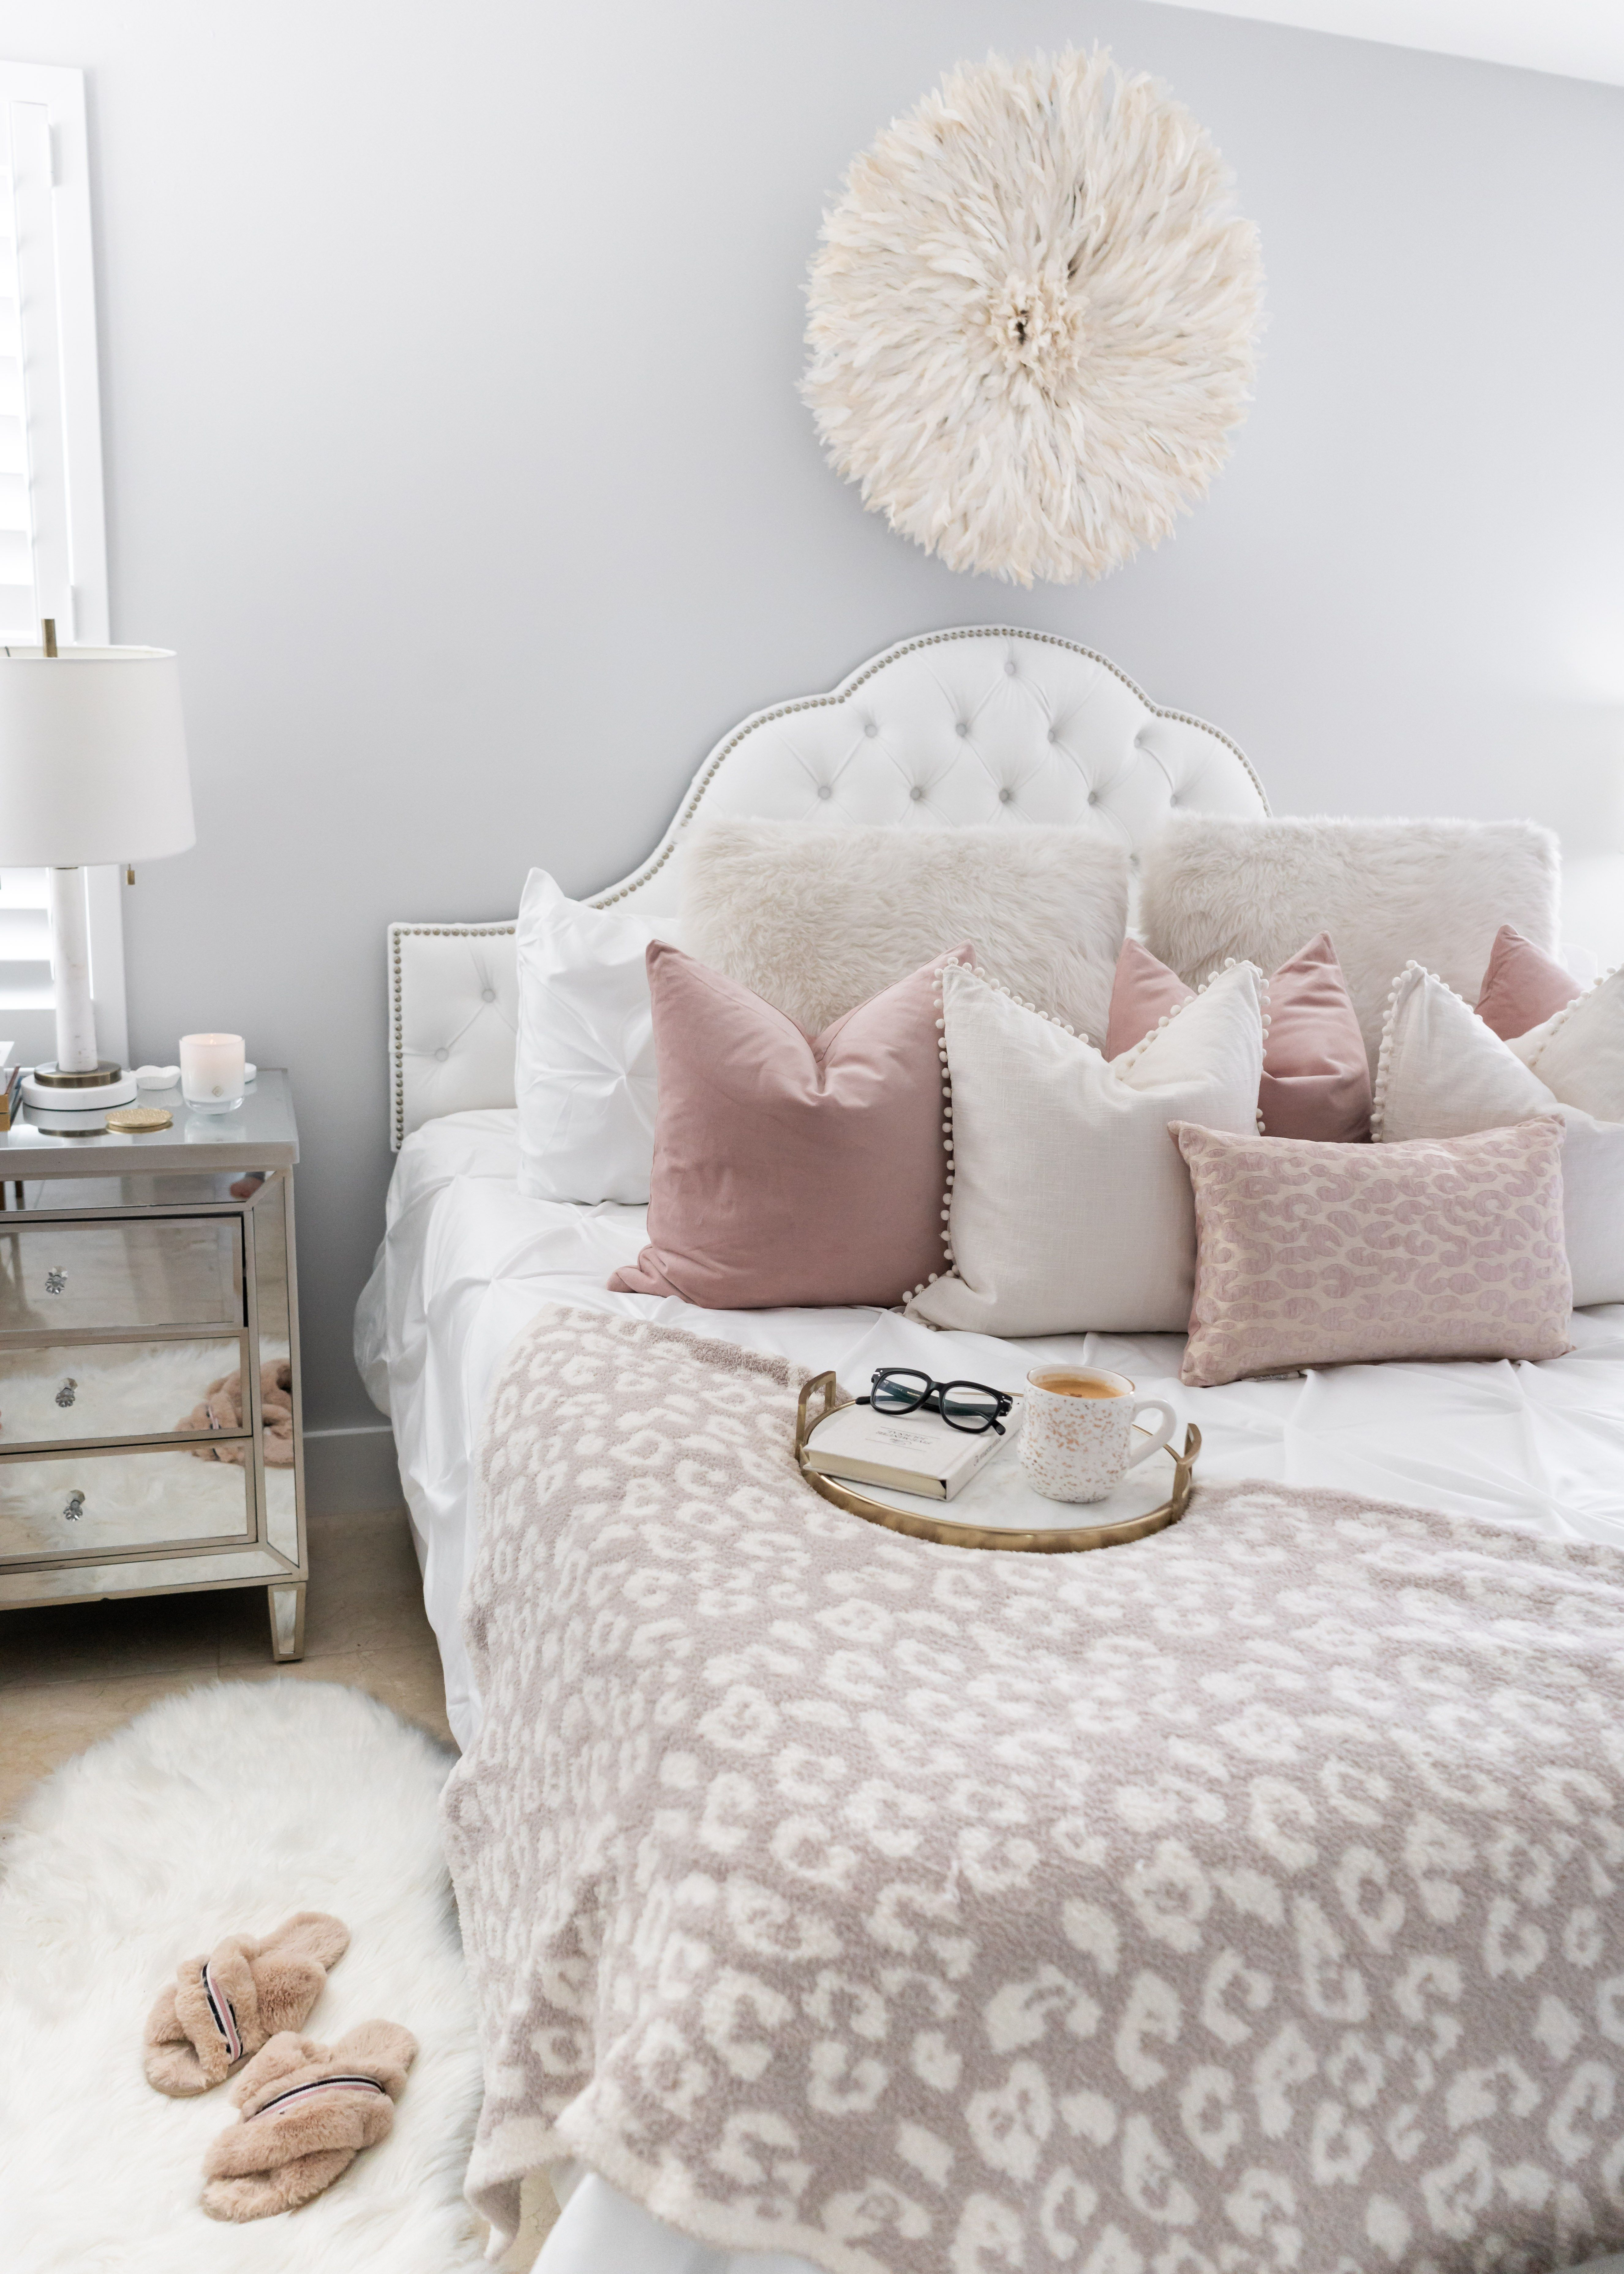 How To Make Your Bedroom Cozy Home decor, Bedroom decor